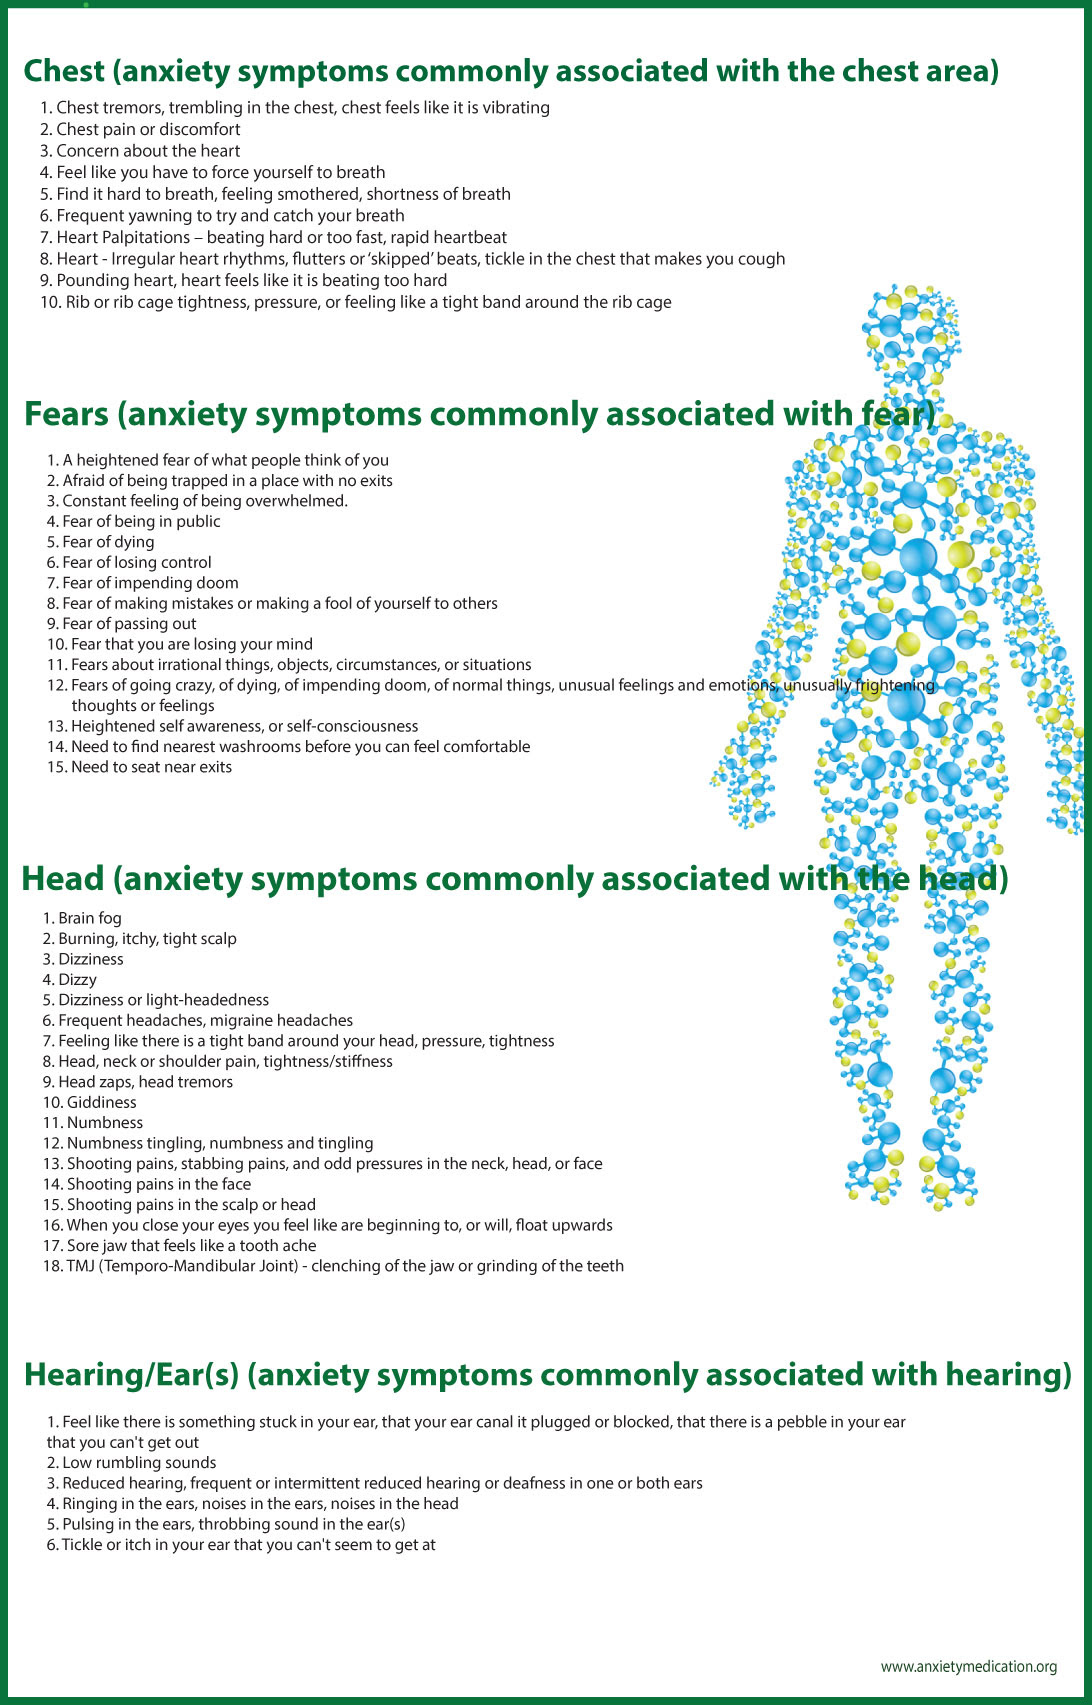 Over 100 Anxiety Symptoms - Infographics | Anxiety Medication